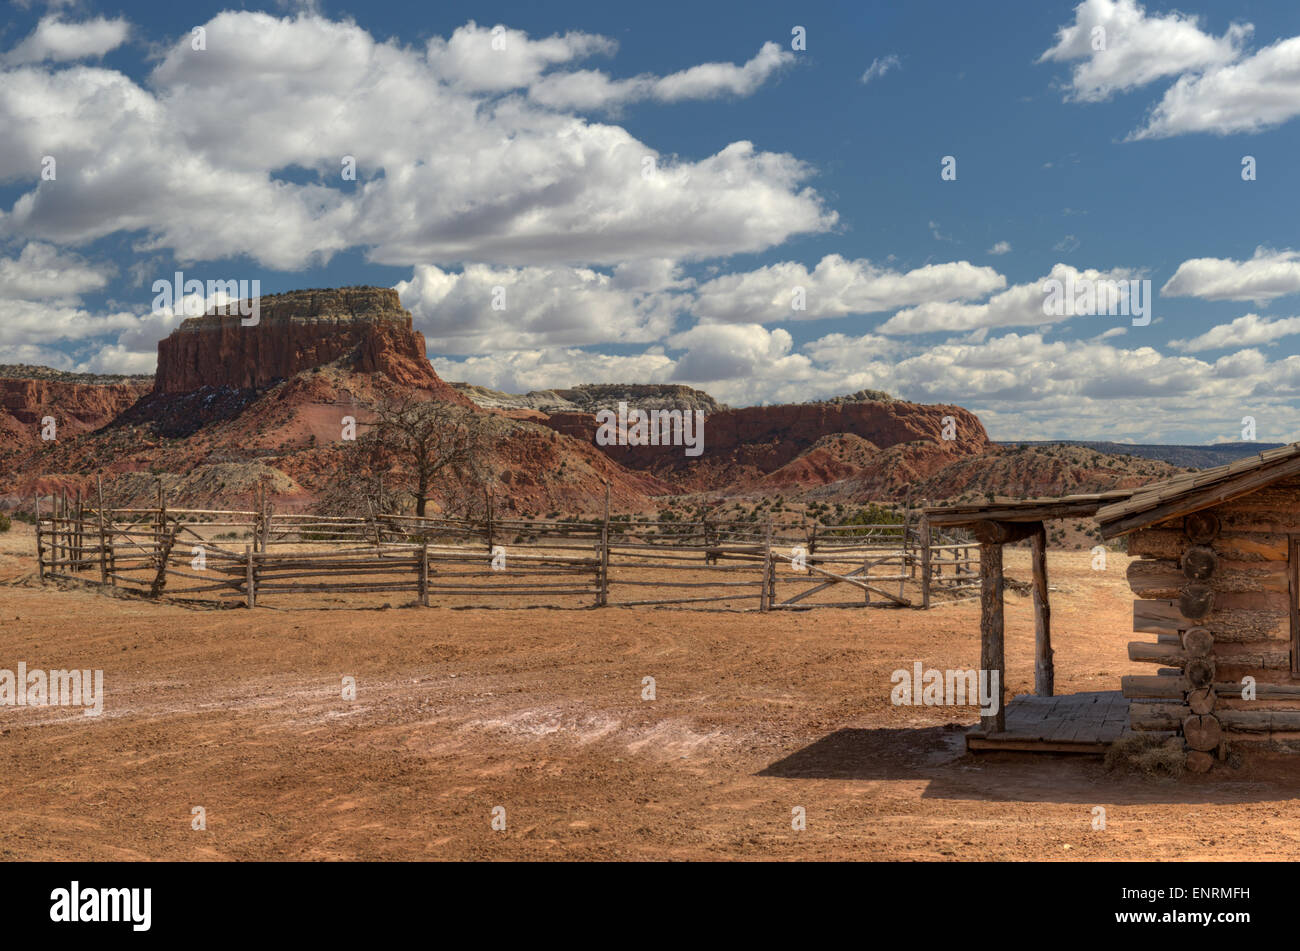 Ghost Ranch Stock Photos & Ghost Ranch Stock Images - Alamy on shade garden designs, walking labyrinth designs, school garden designs, dog park designs, labyrinth backyard designs, knockout rose garden designs, informal herb garden designs, rectangular prayer labyrinth designs, new mexico garden designs, heart labyrinth designs, 6 path labyrinth designs, spiral designs, stage garden designs, finger labyrinth designs, christian prayer labyrinth designs, water garden designs, indoor labyrinth designs, meditation garden designs, simple garden designs, greenhouse garden designs,